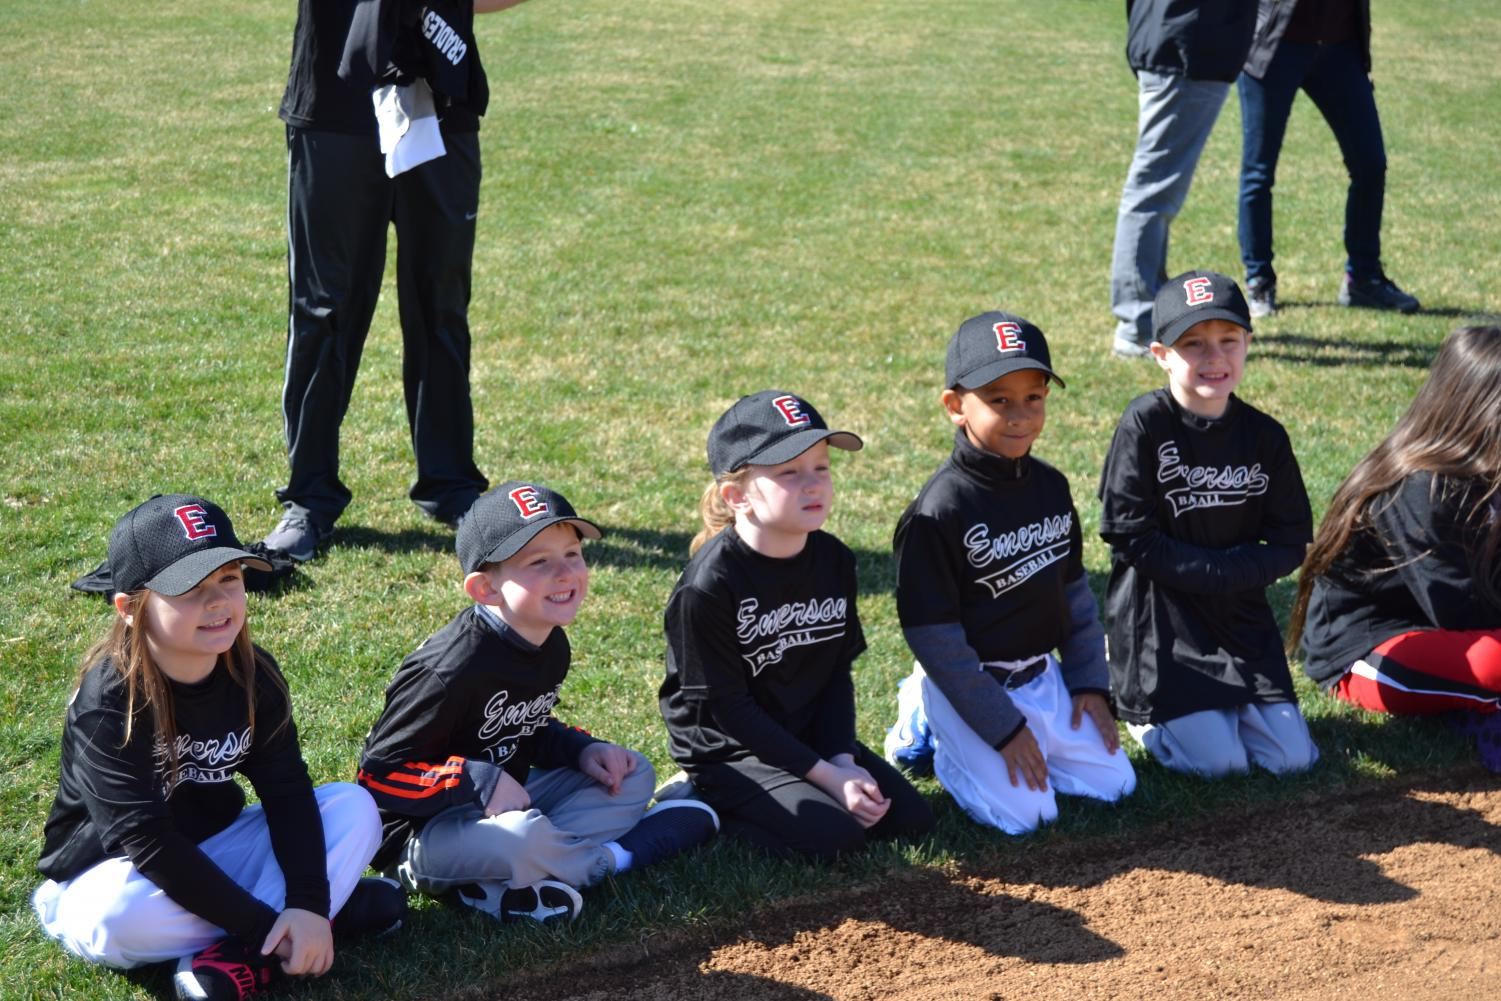 here a group of kindergartners on the T-Ball team sit and listen enthusiastically to the announcements of the season. This is one of dozens of teams from the borough. Children from kindergarten through eighth grade play baseball or softball.